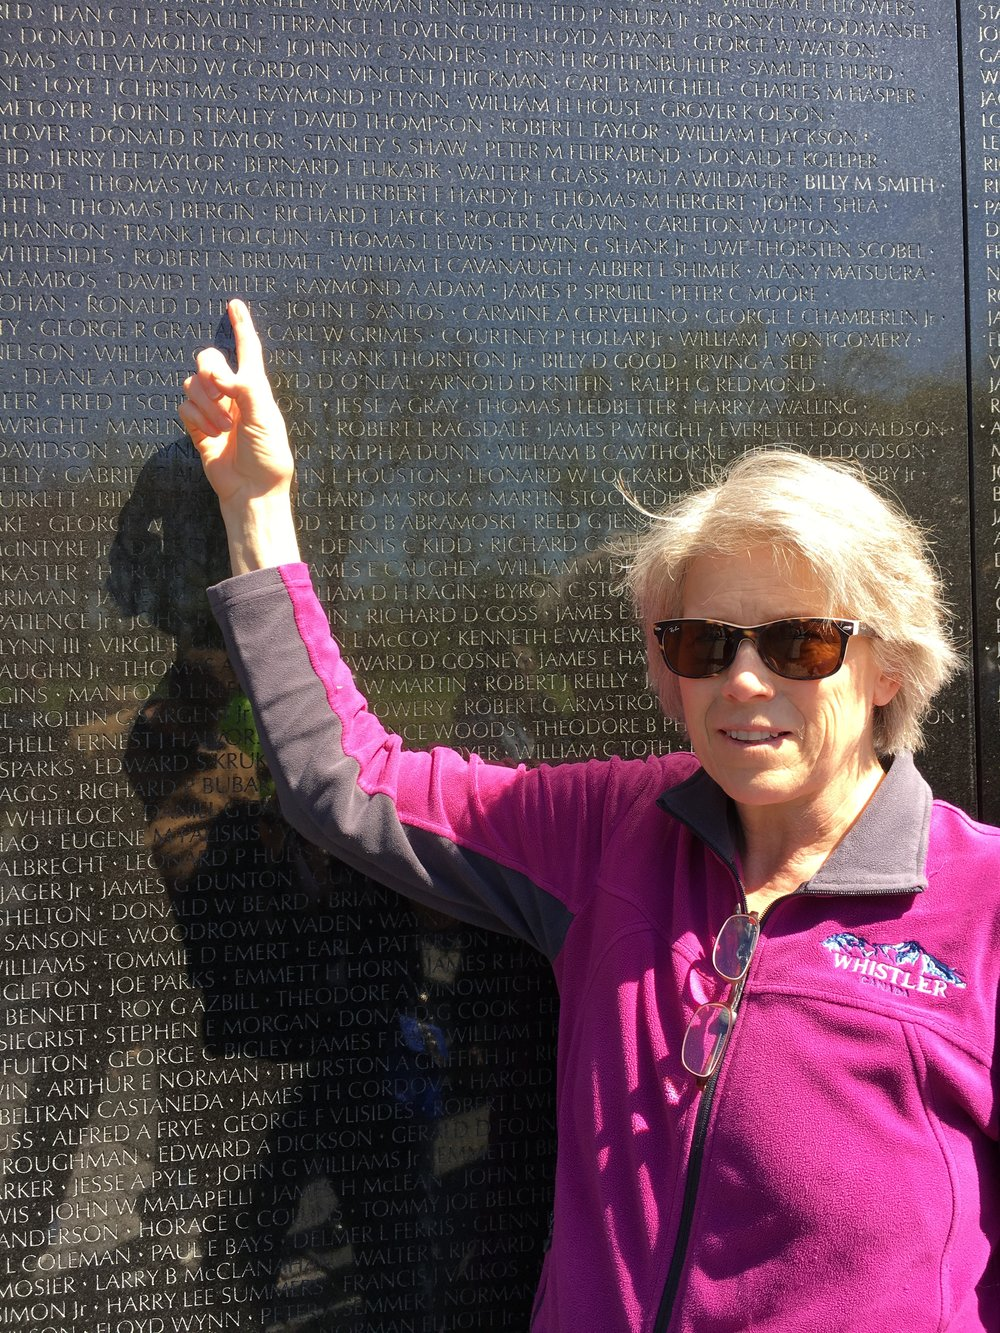 Bonnie at the Vietnam Veteran's Memorial in Washington D.C. on the 53rd anniversary of her father's death.